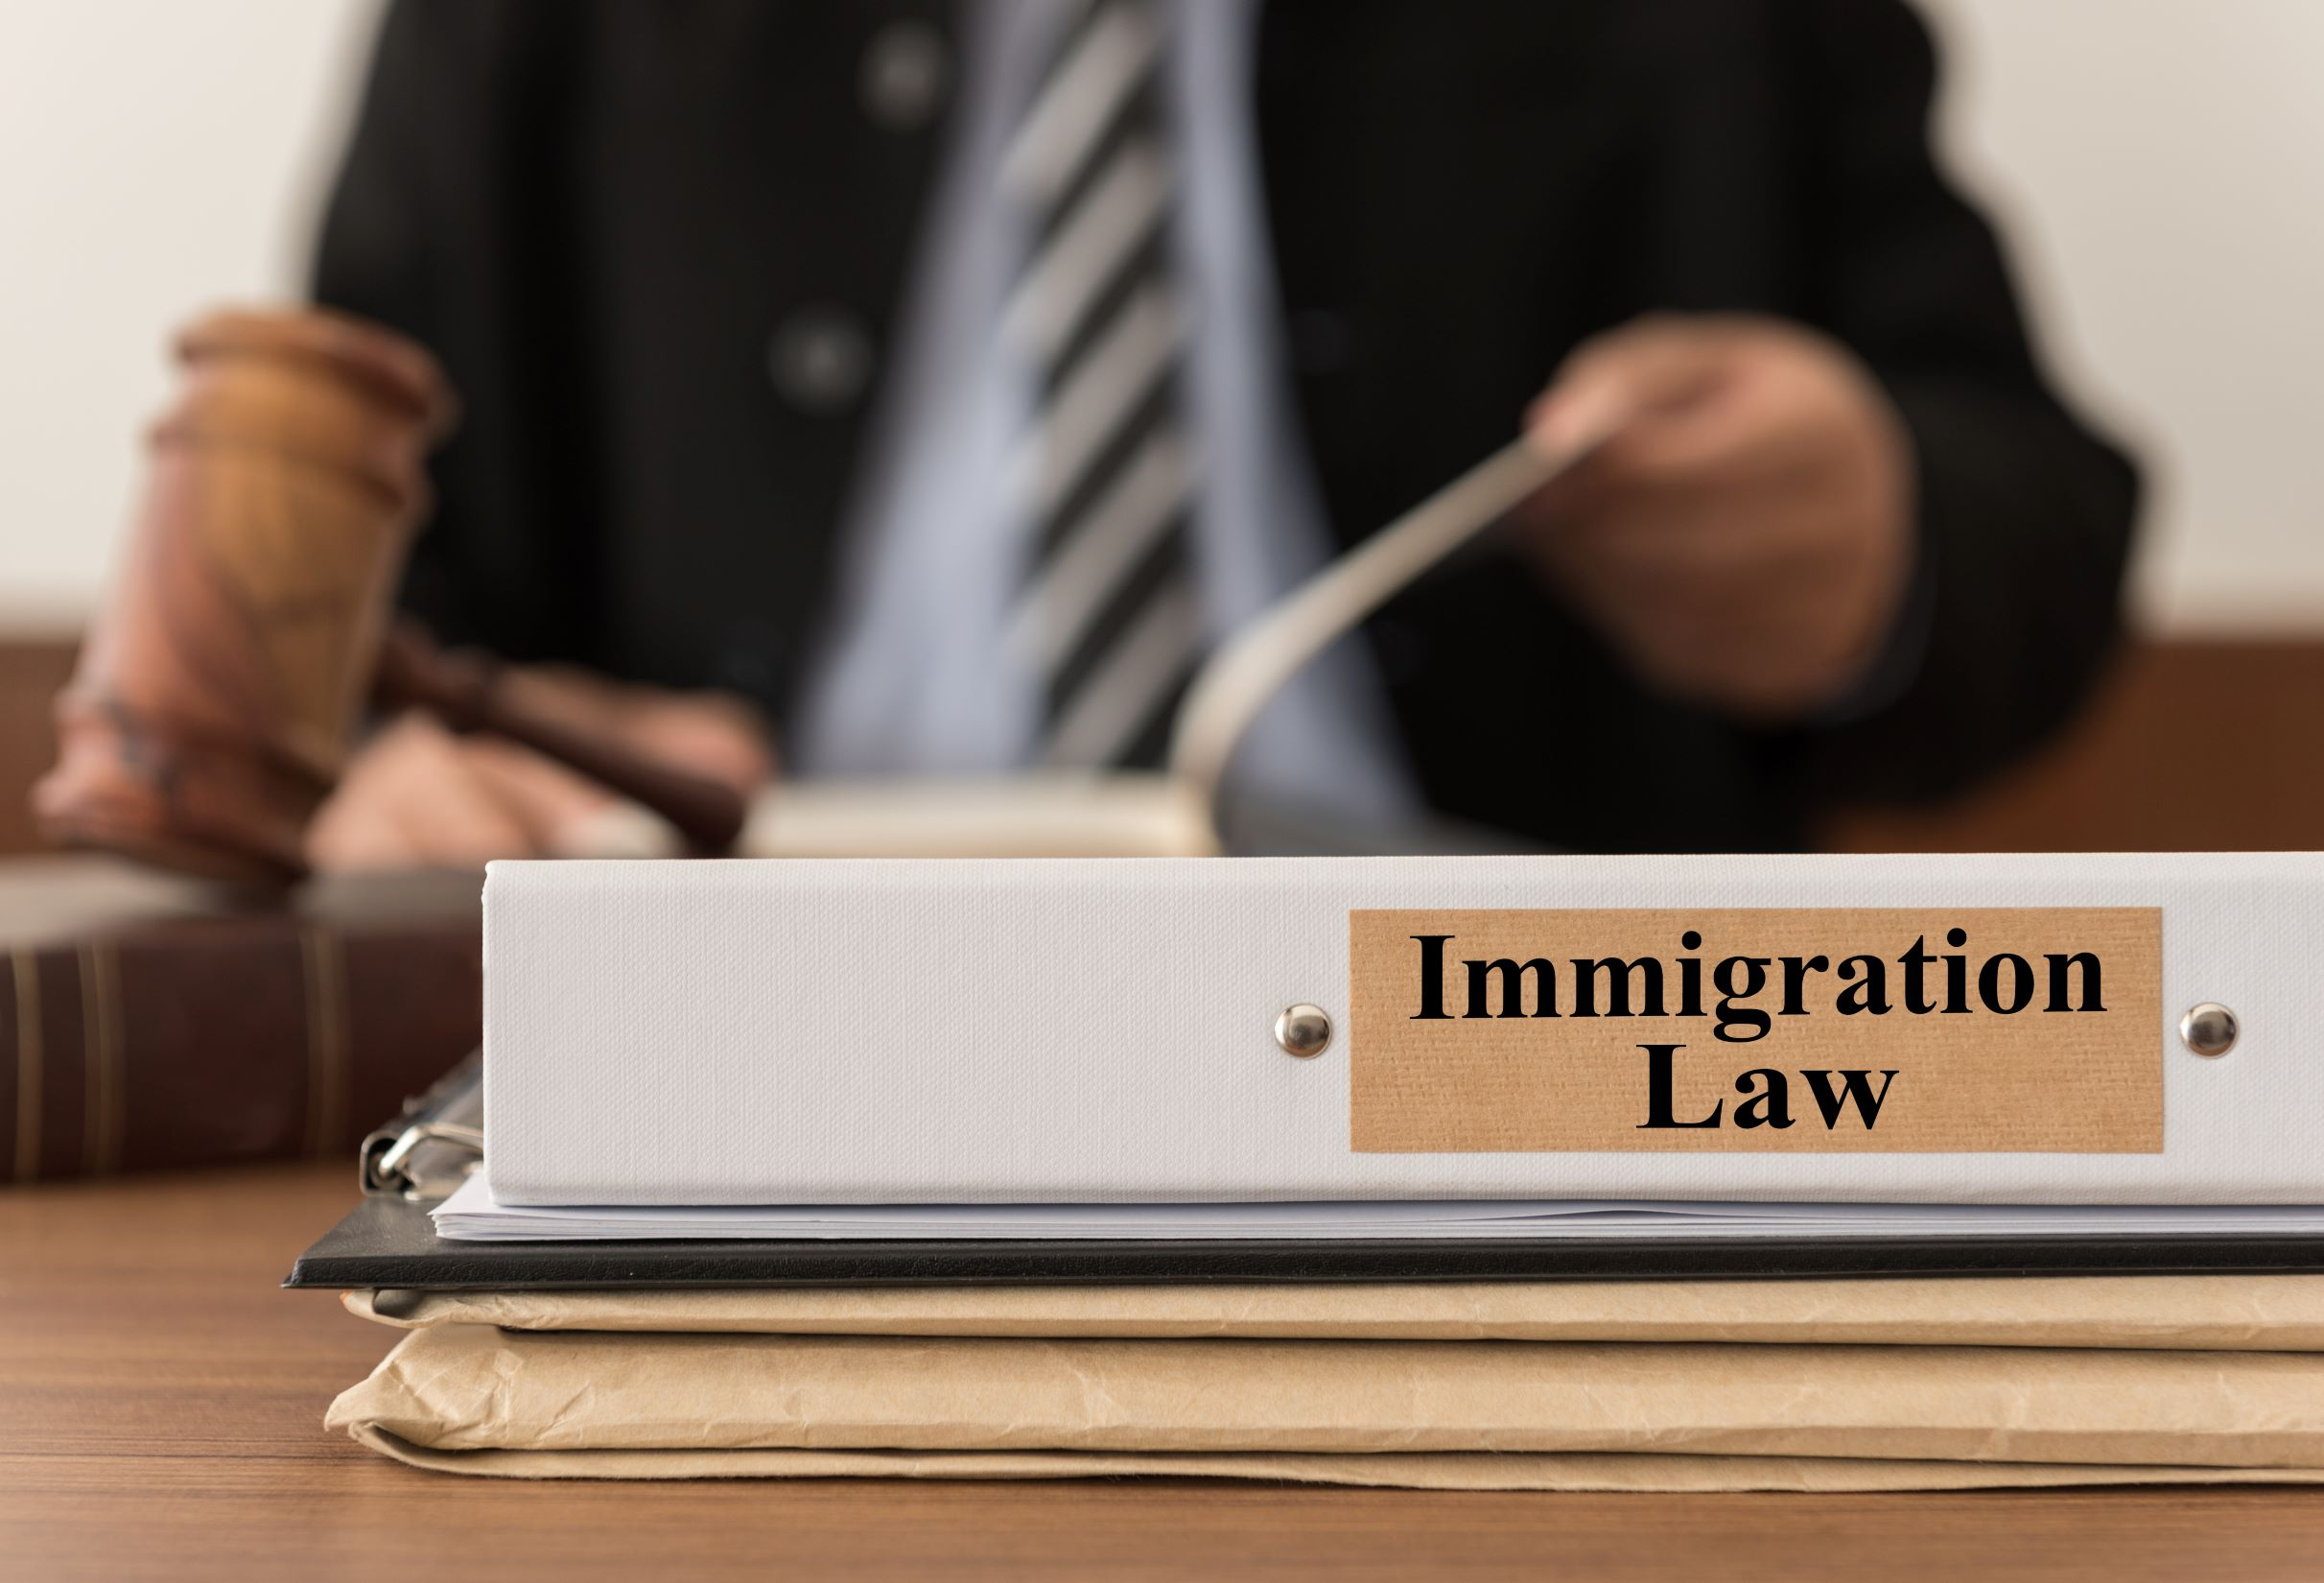 Immigration law is very complicated. If someone you know is facing a deportation hearing or may receive an immigration bond, consult with an immigration attorney and bail bondsman.